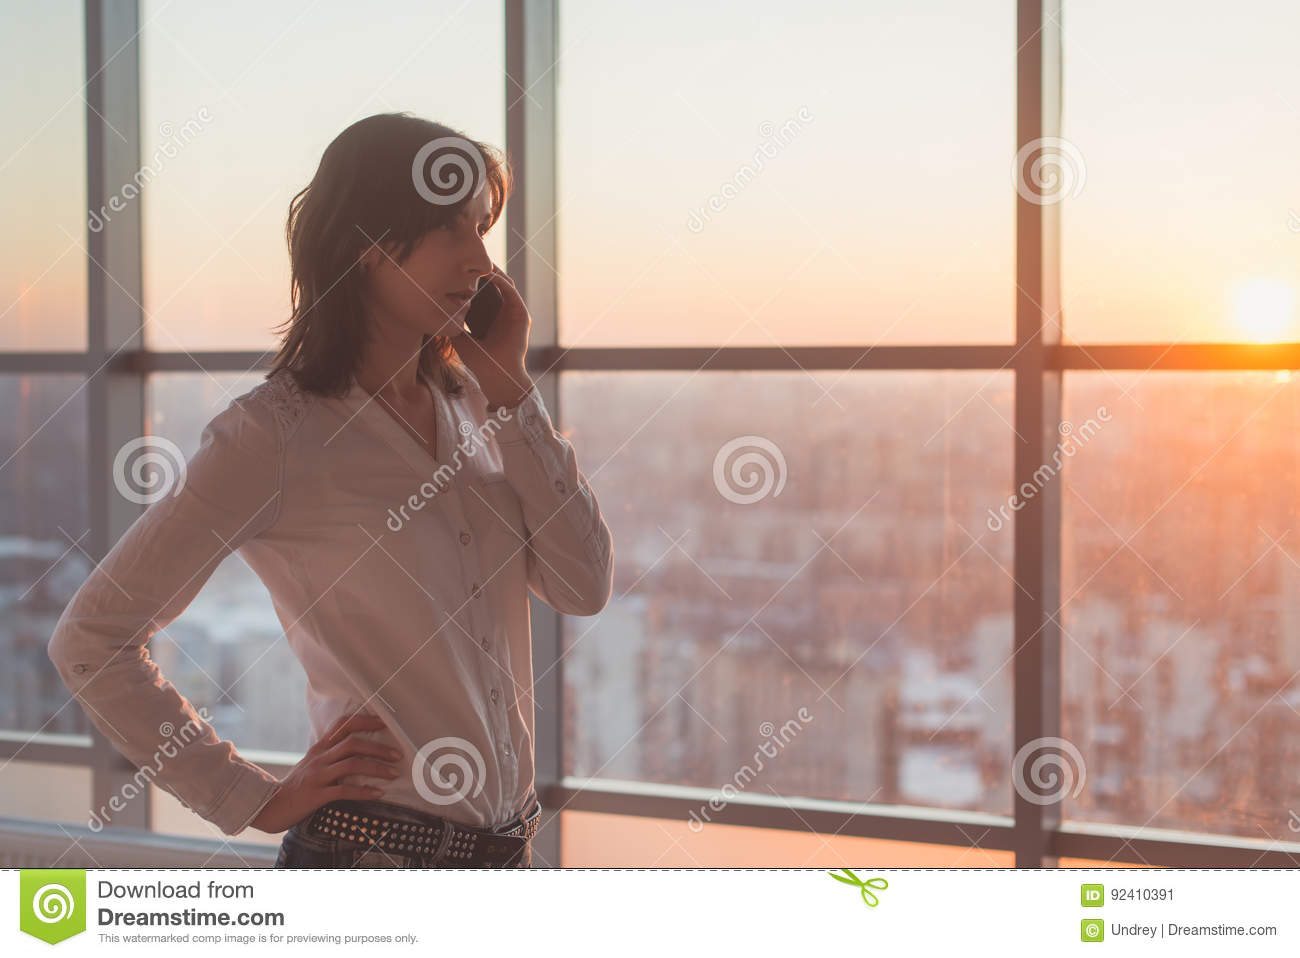 Young woman talking using cell phone at office in the evening. Female businesswoman concentrated, looking forward